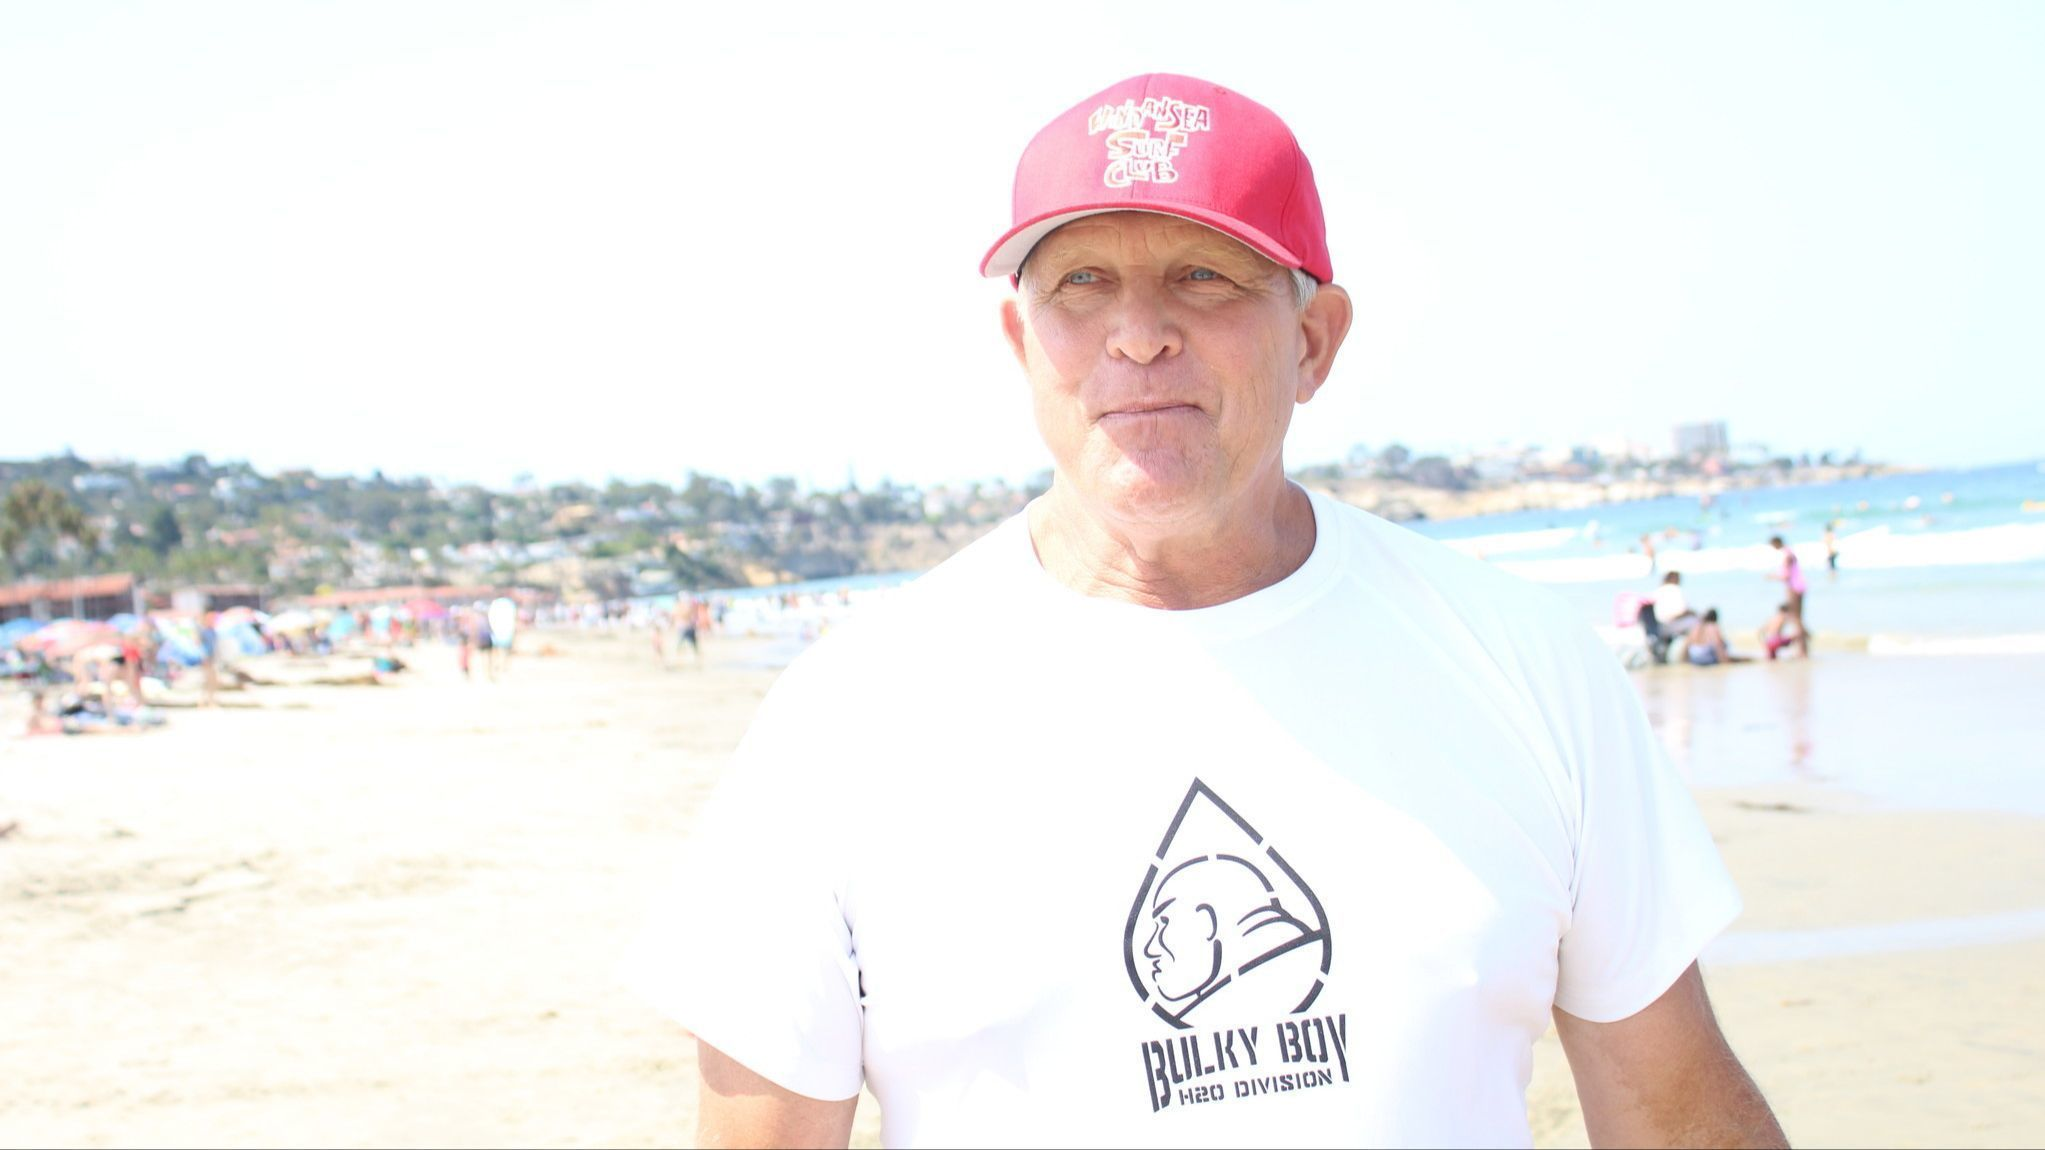 WindanSea Surf Club president Bill Fitzmaurice reflects on his club's history during its latest Day at the Beach charity event at La Jolla Shores.